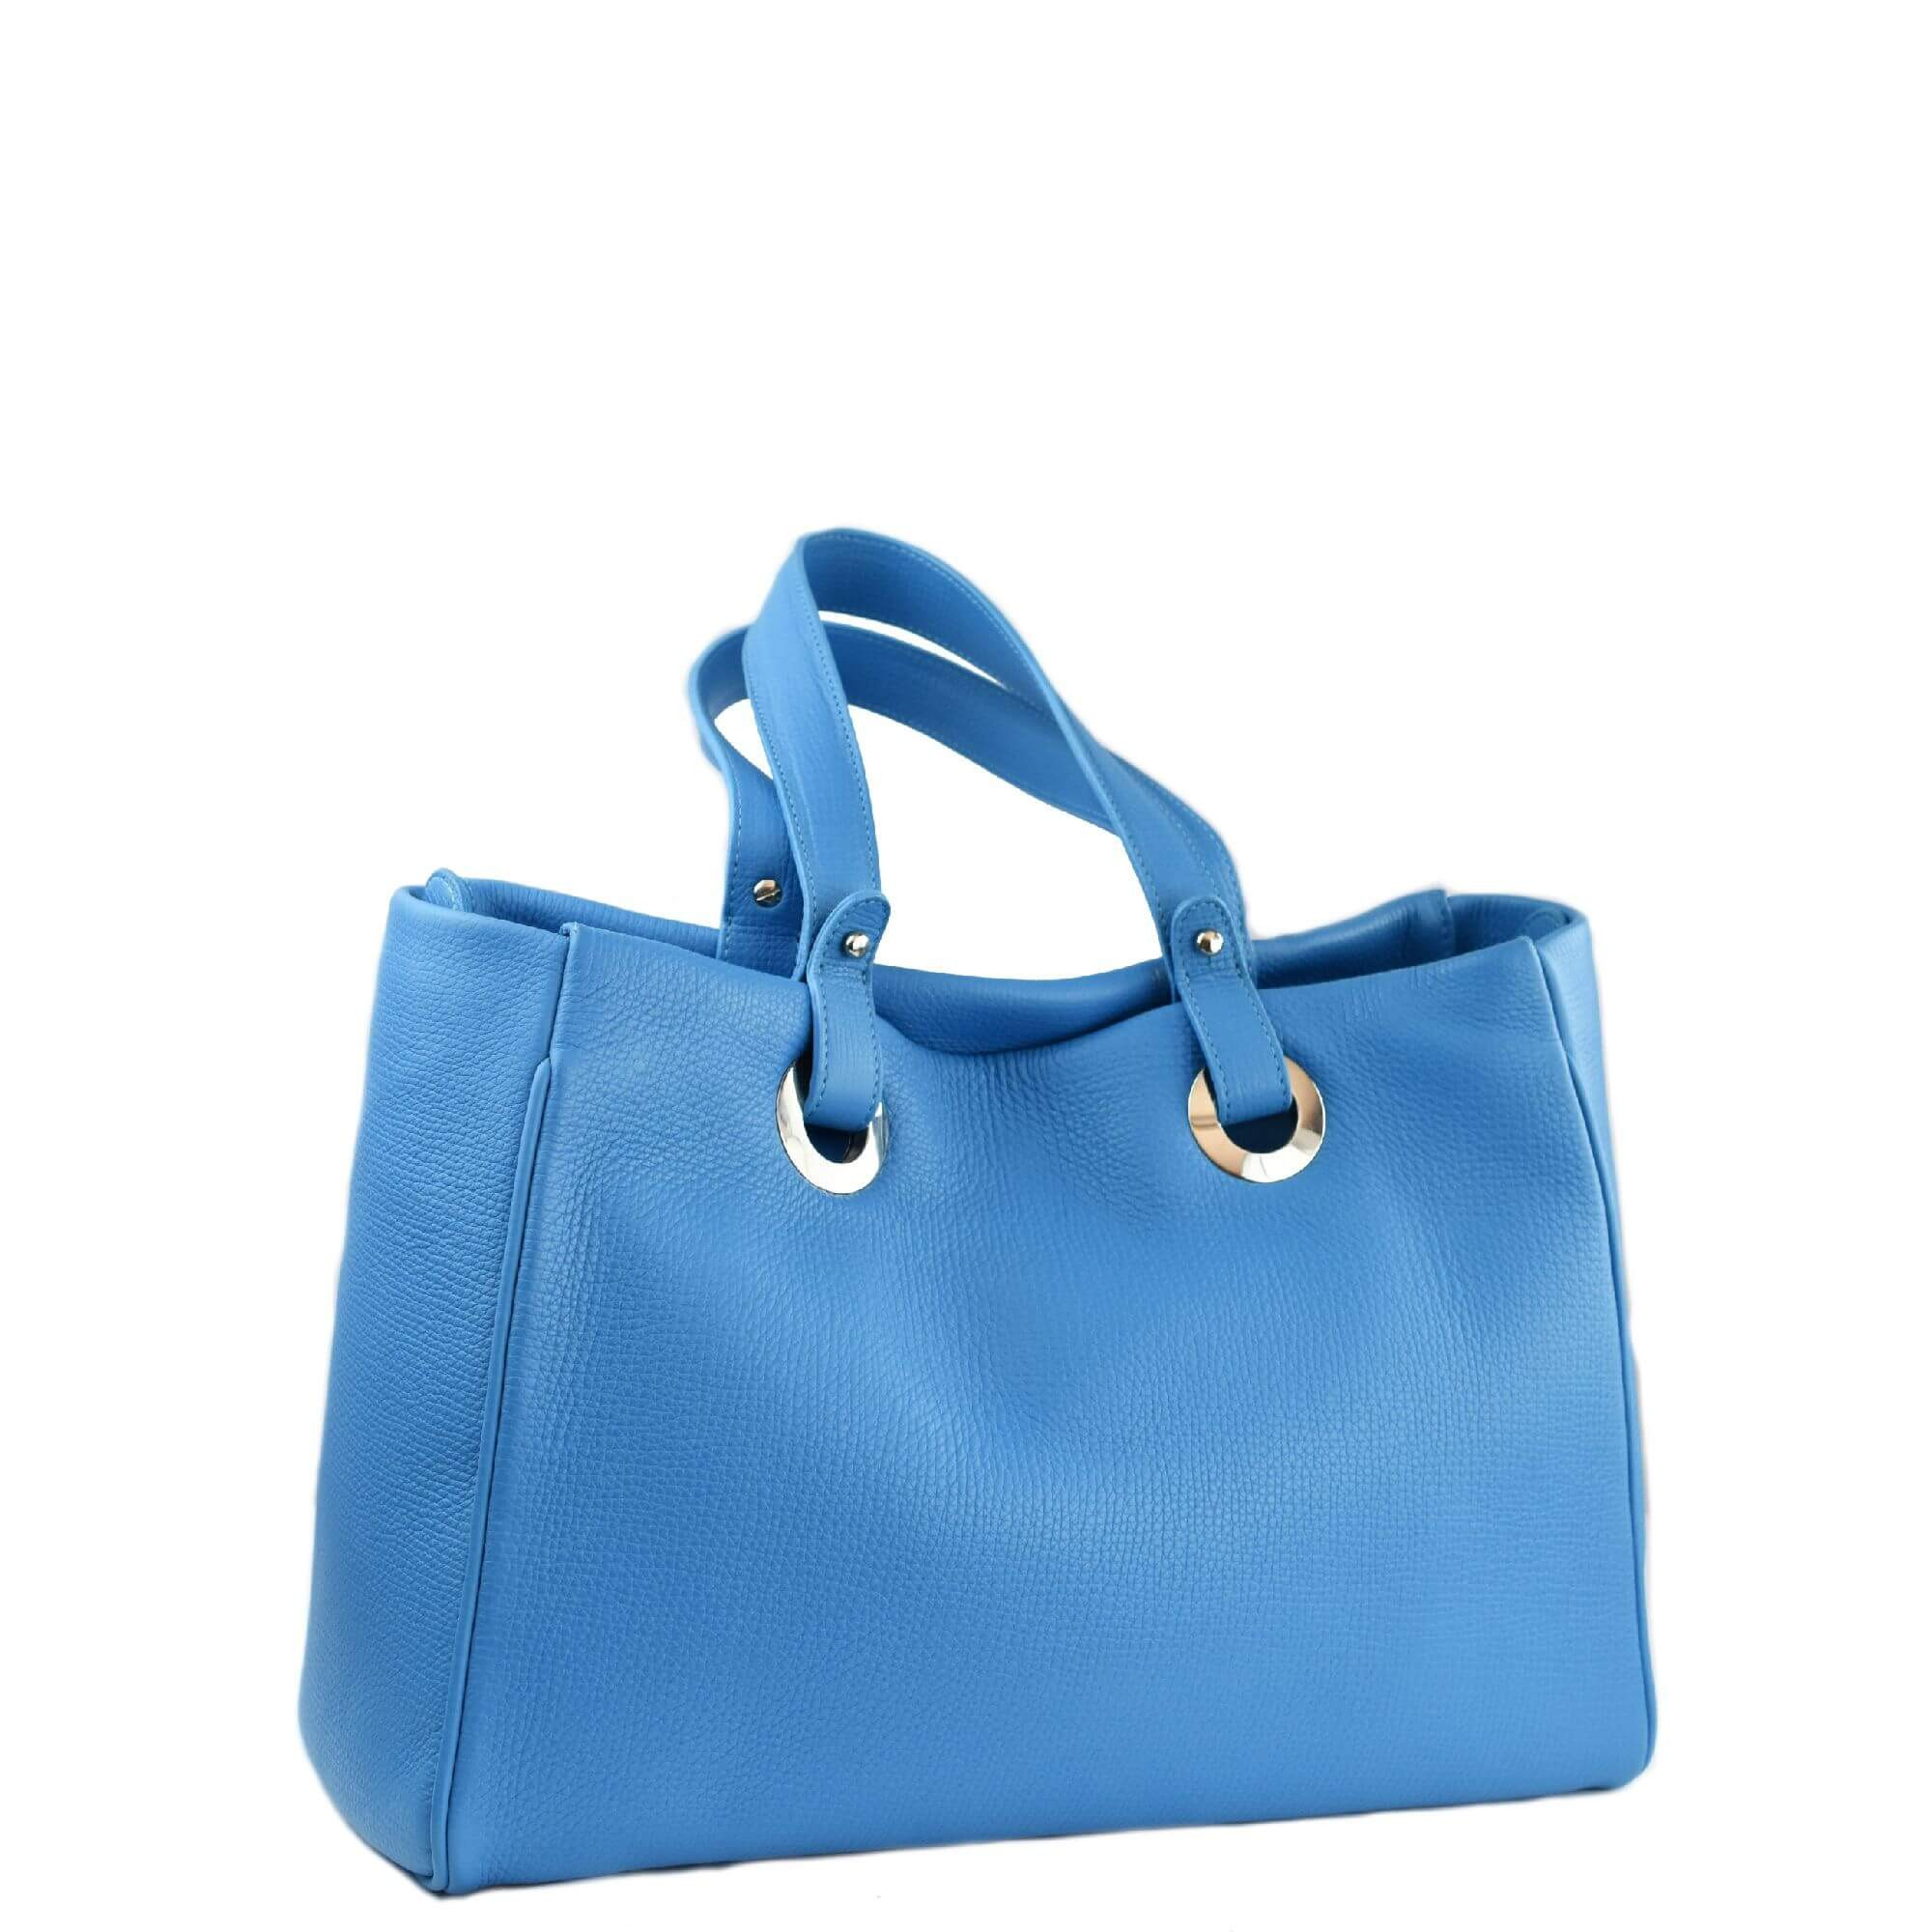 Madrid Handbag Tote Blue